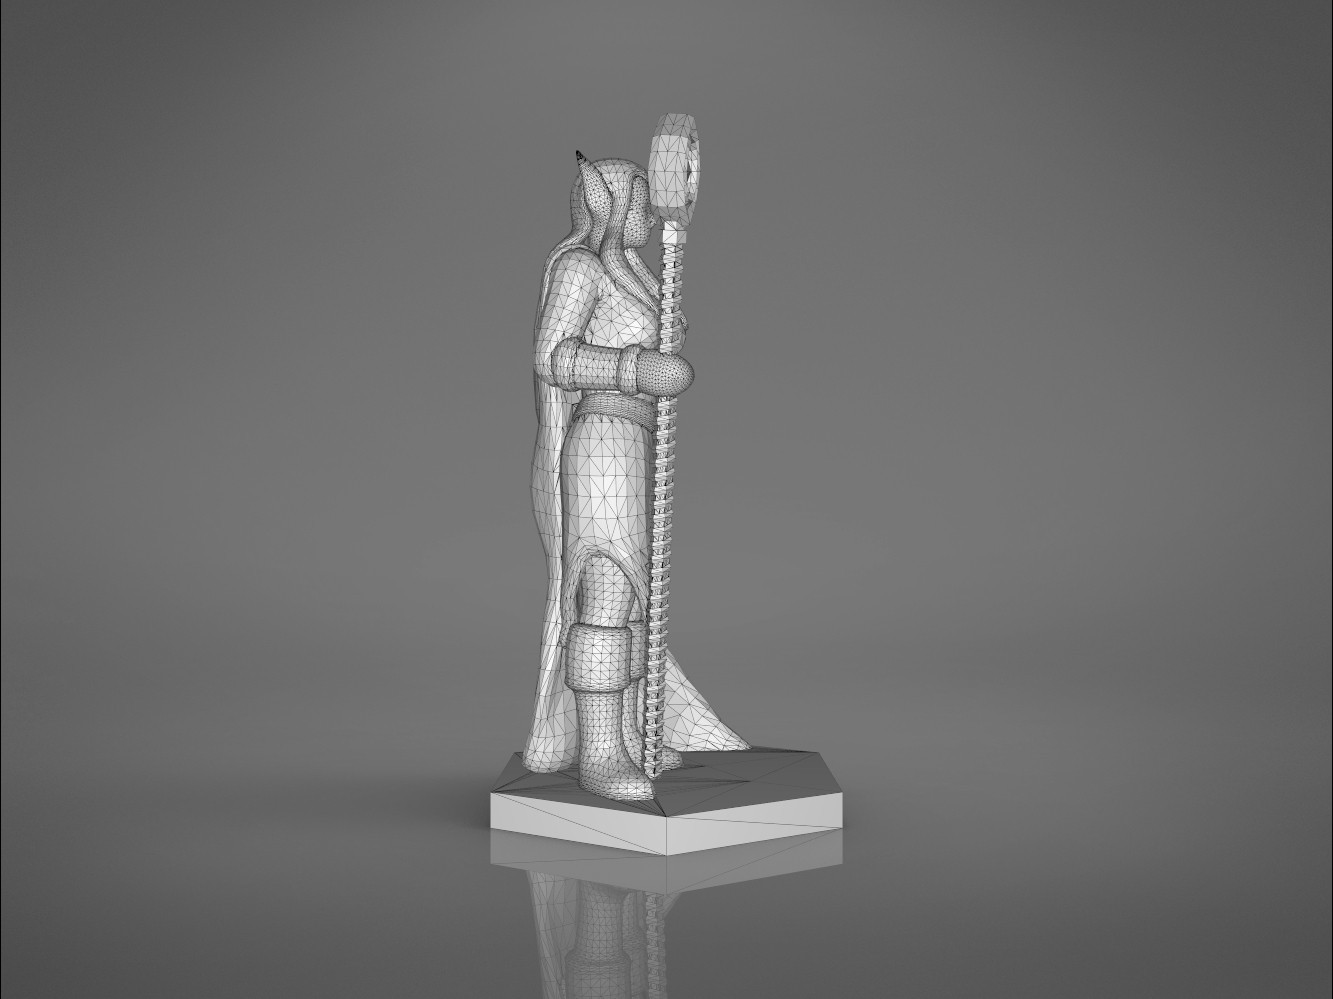 Mage_2_-left_perspective.173.jpg Download STL file ELF MAGE FEMALE CHARACTER GAME FIGURES 3D print model • 3D printing template, 3D-mon